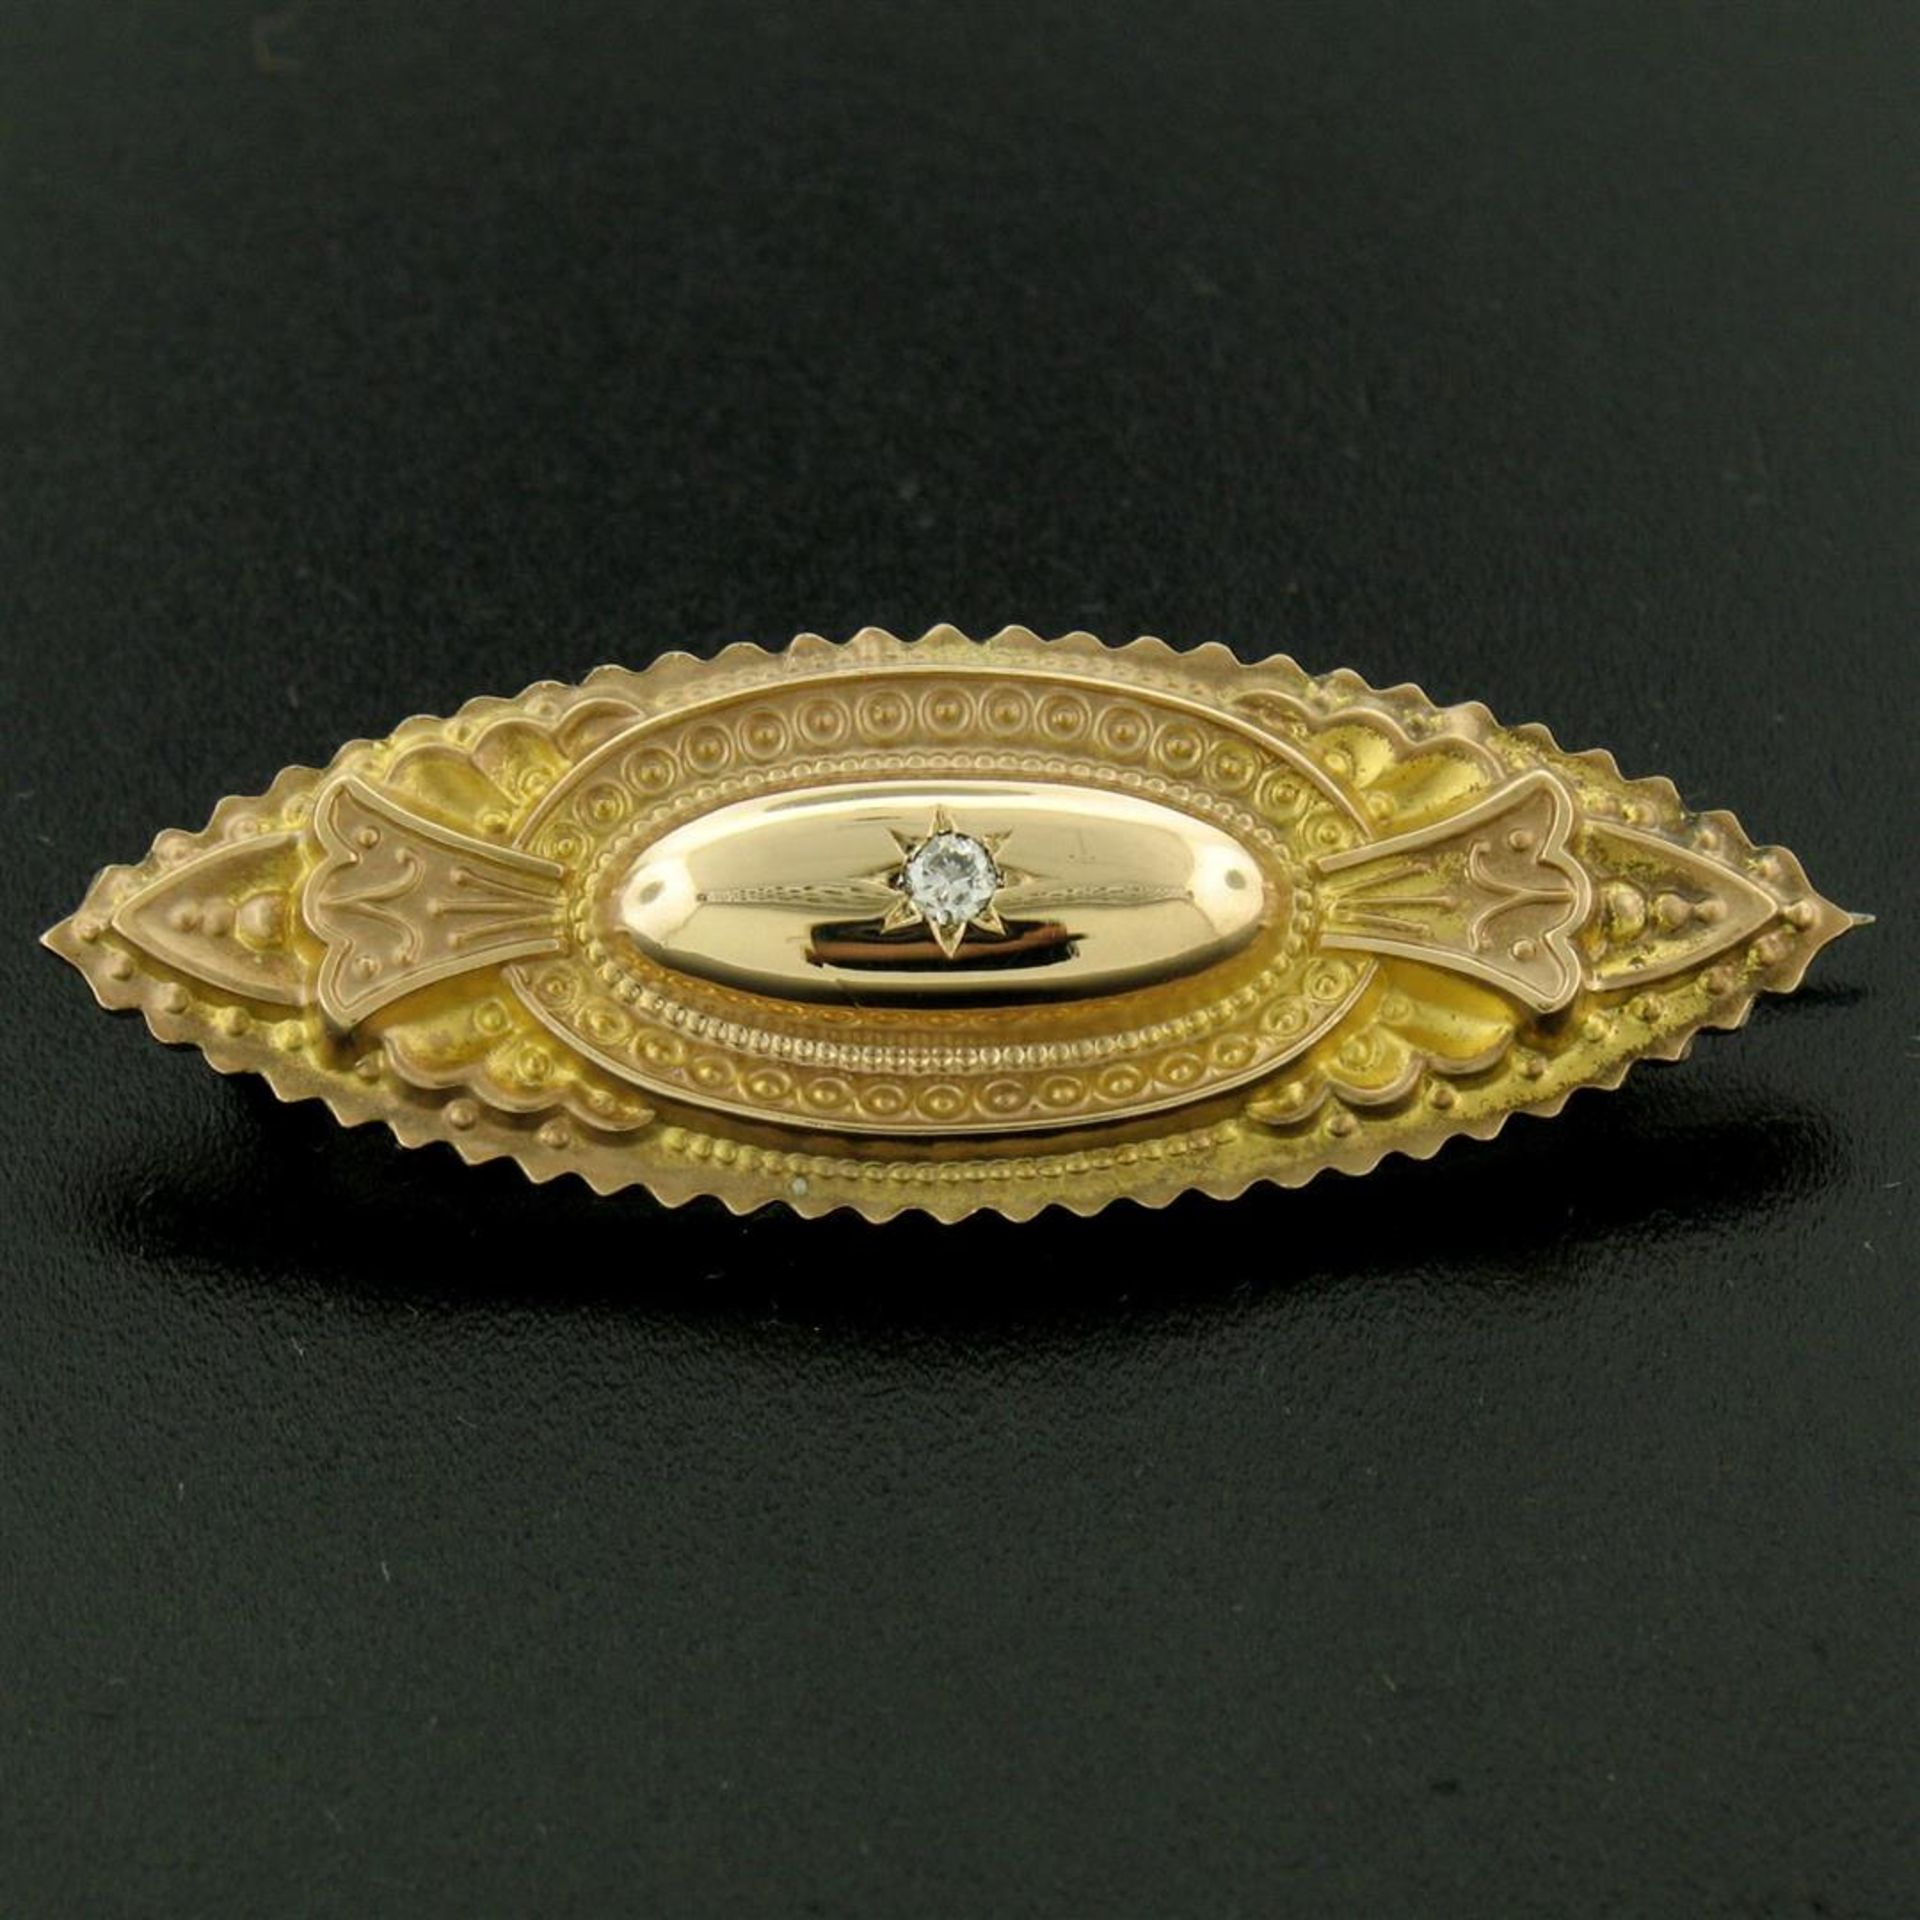 9k Yellow Gold .10 ctw Diamond Marquise Shaped Etched Brooch Pin - Image 2 of 9